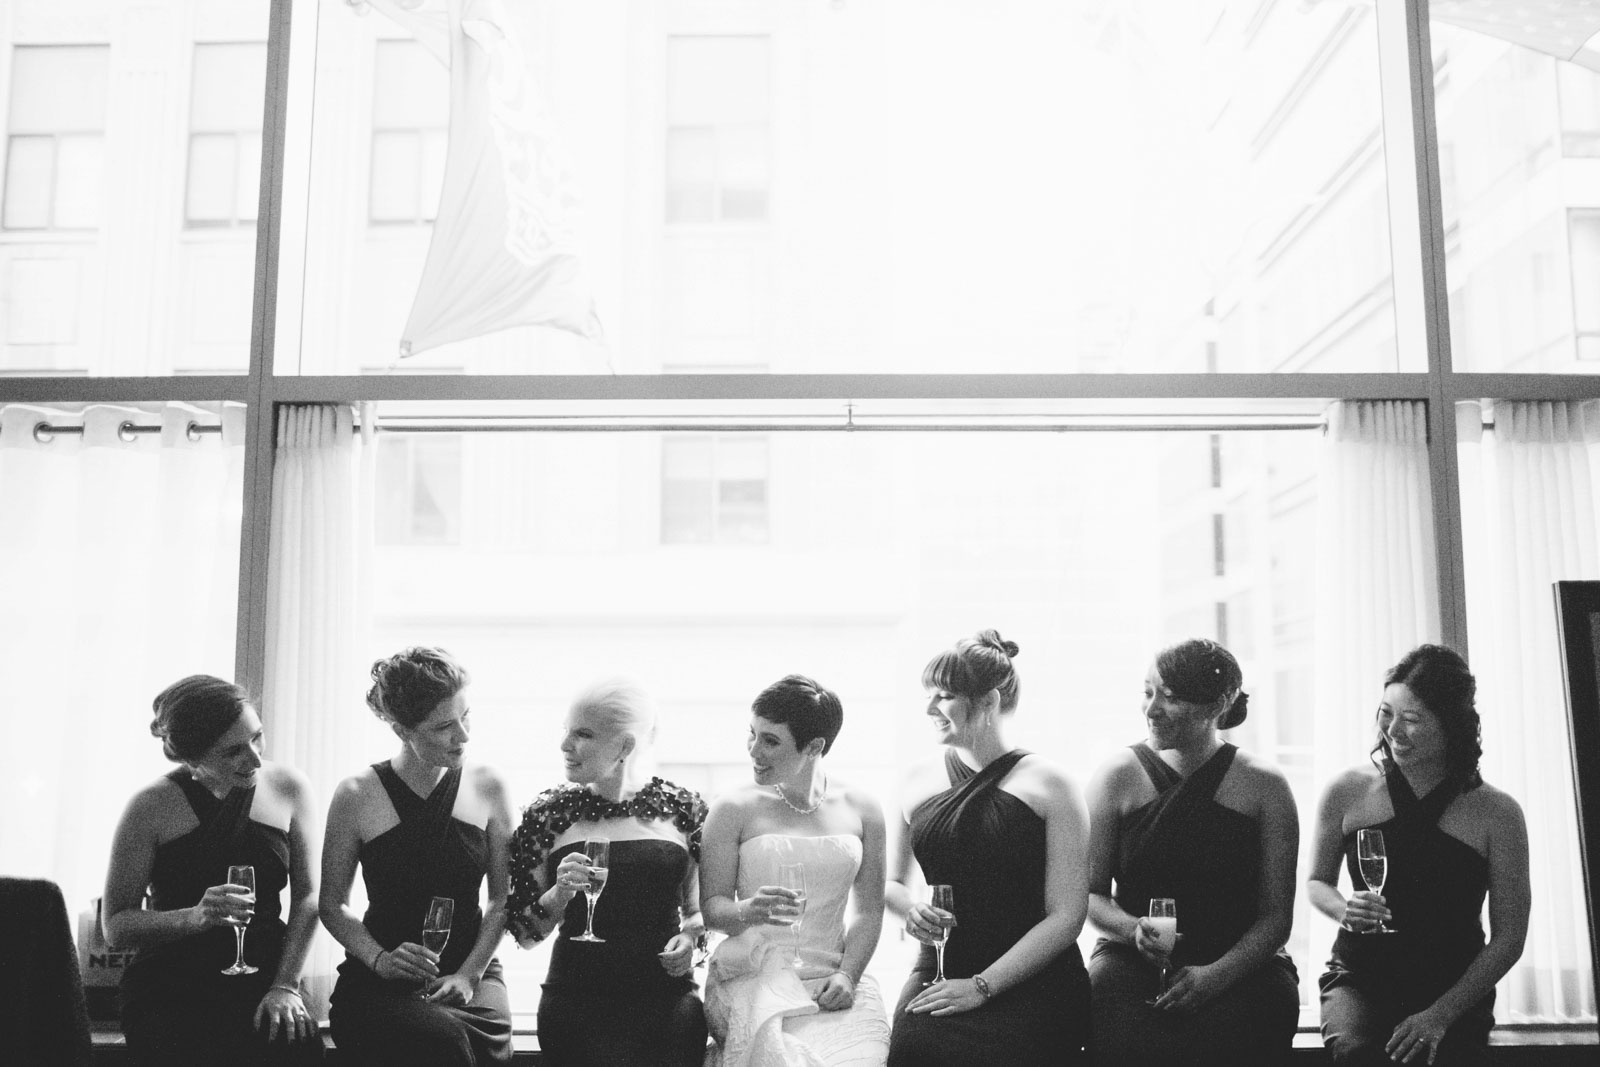 Black and white silhouette of bridal party sitting on window sill sipping champagne in bridal suite